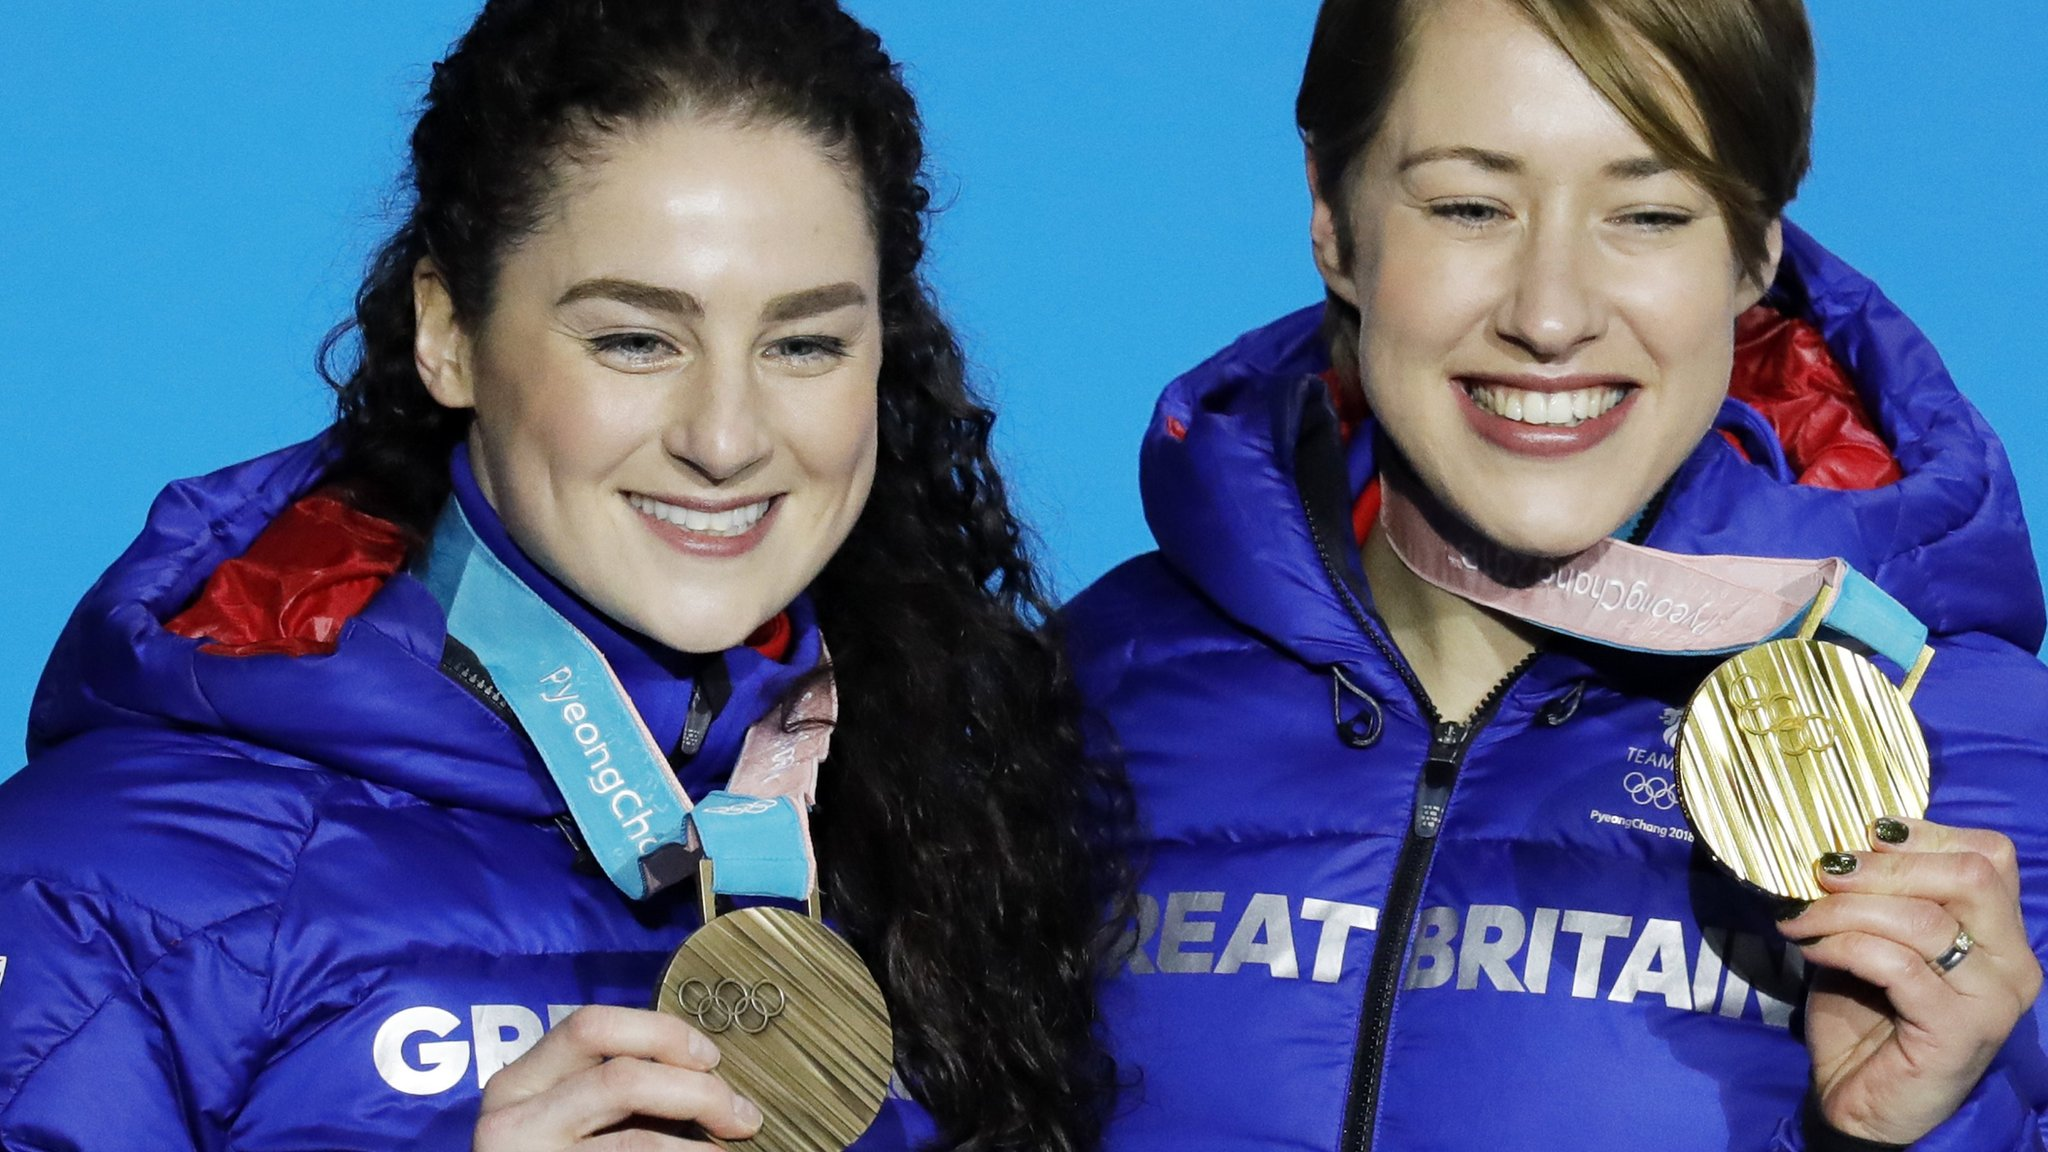 GB winter sport 'going in right direction'